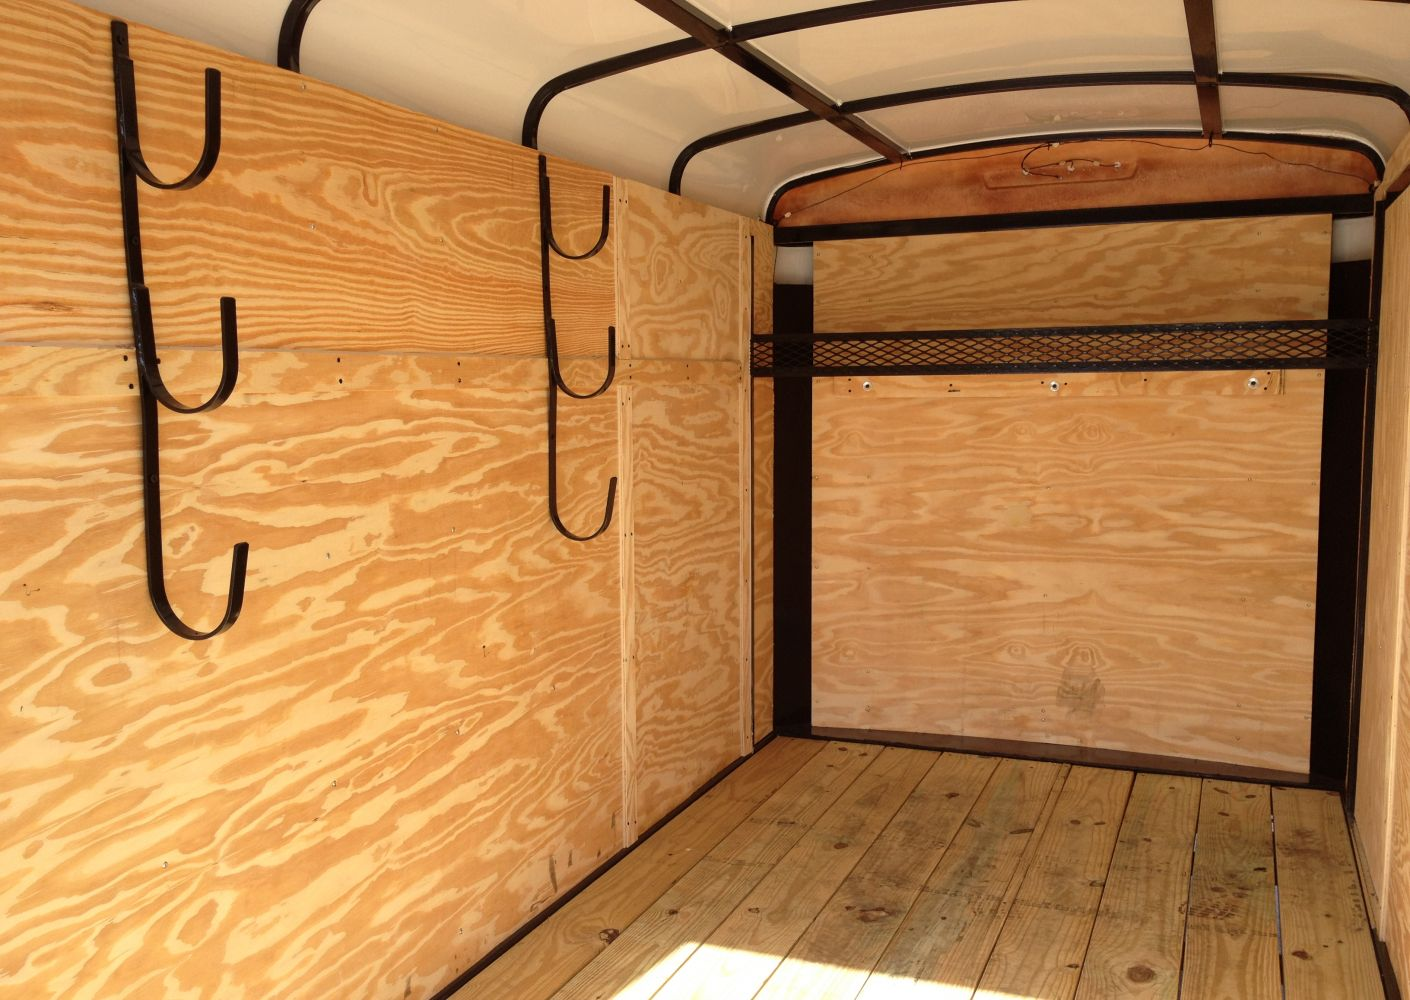 Interior Set-up of a Suncoast Trailer